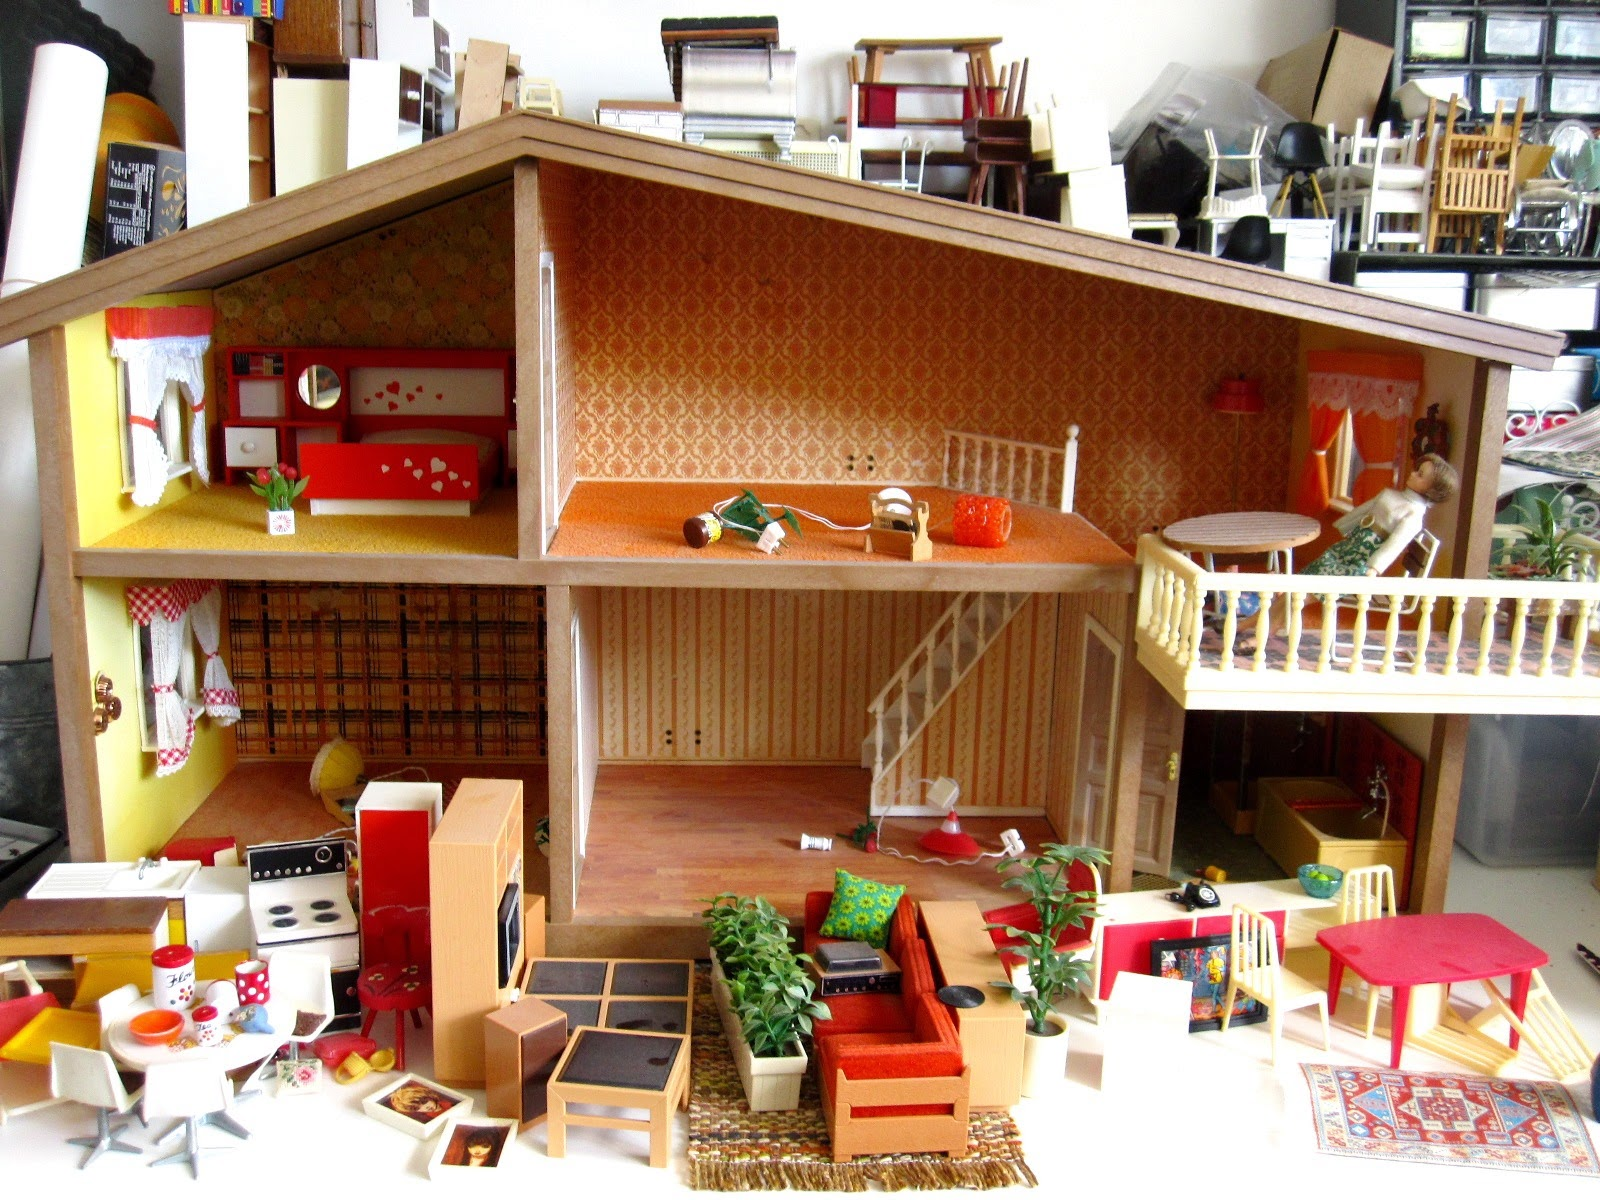 1975 Lundby dolls' house, with a selection of non-Lundby furniture in front of it.